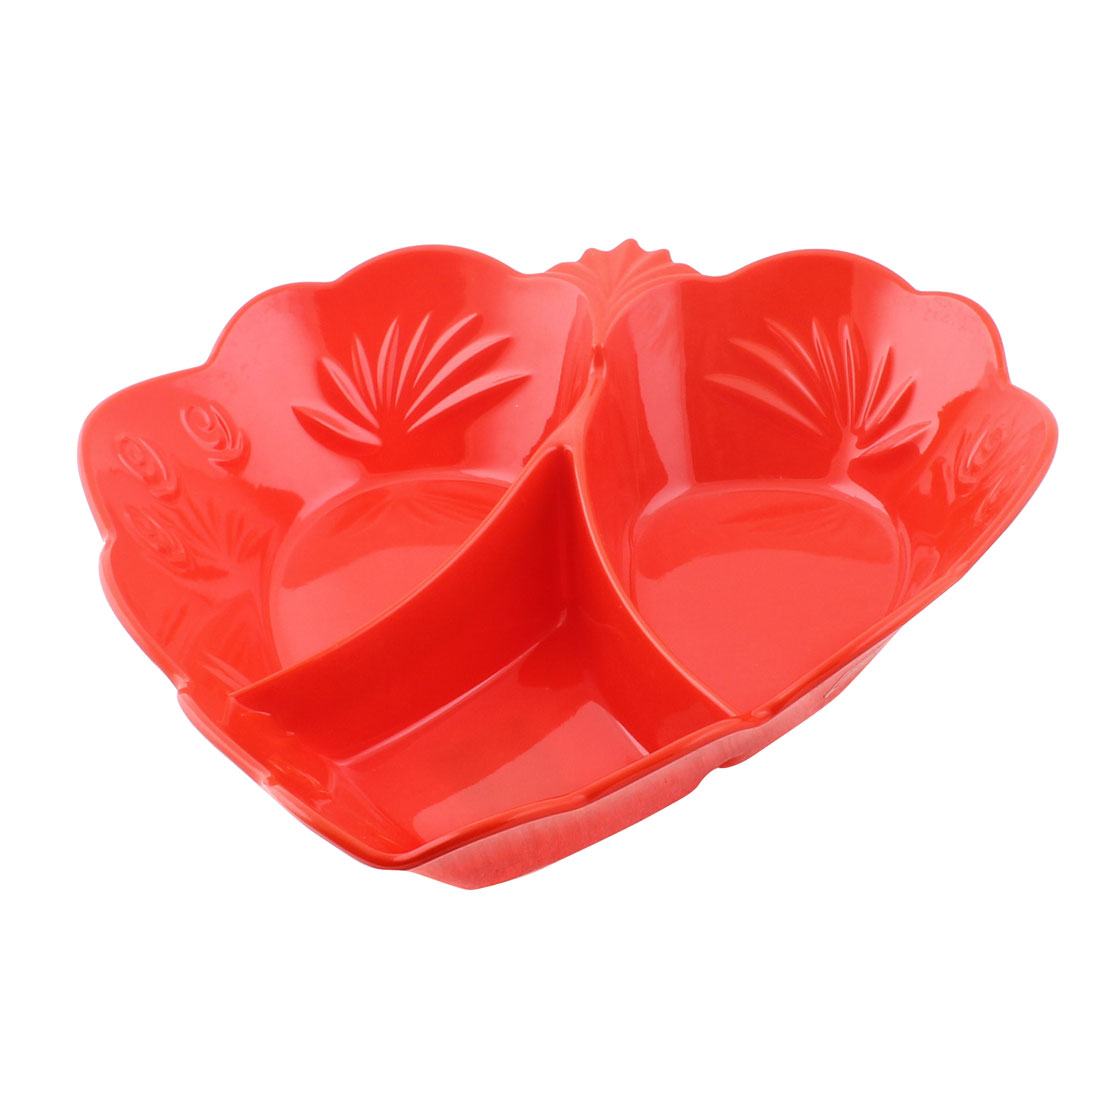 Unique Bargains Plastic 3 Compartments Fruit Candy Snack Nuts Storage Tray Plate Holder Red